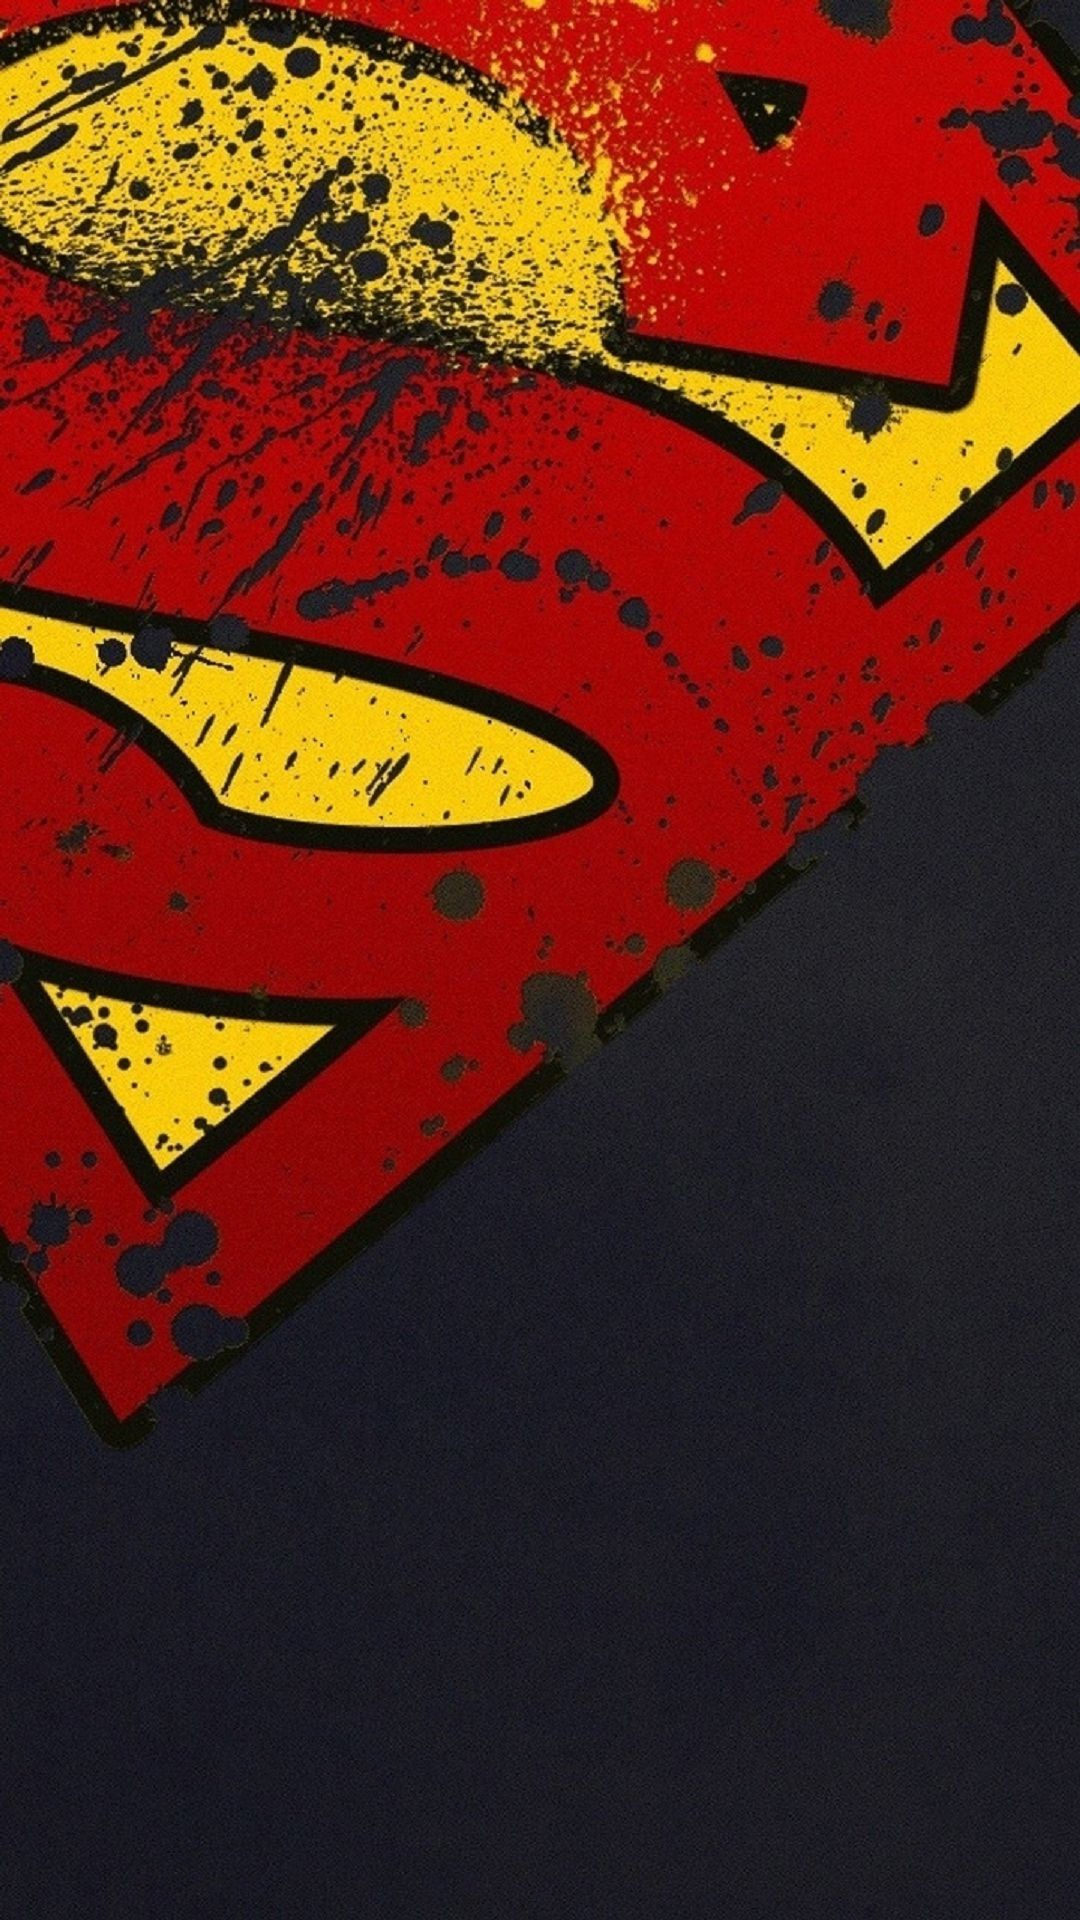 superman wallpaper iphone  IPhone 6 Superman Wallpaper (77  images)